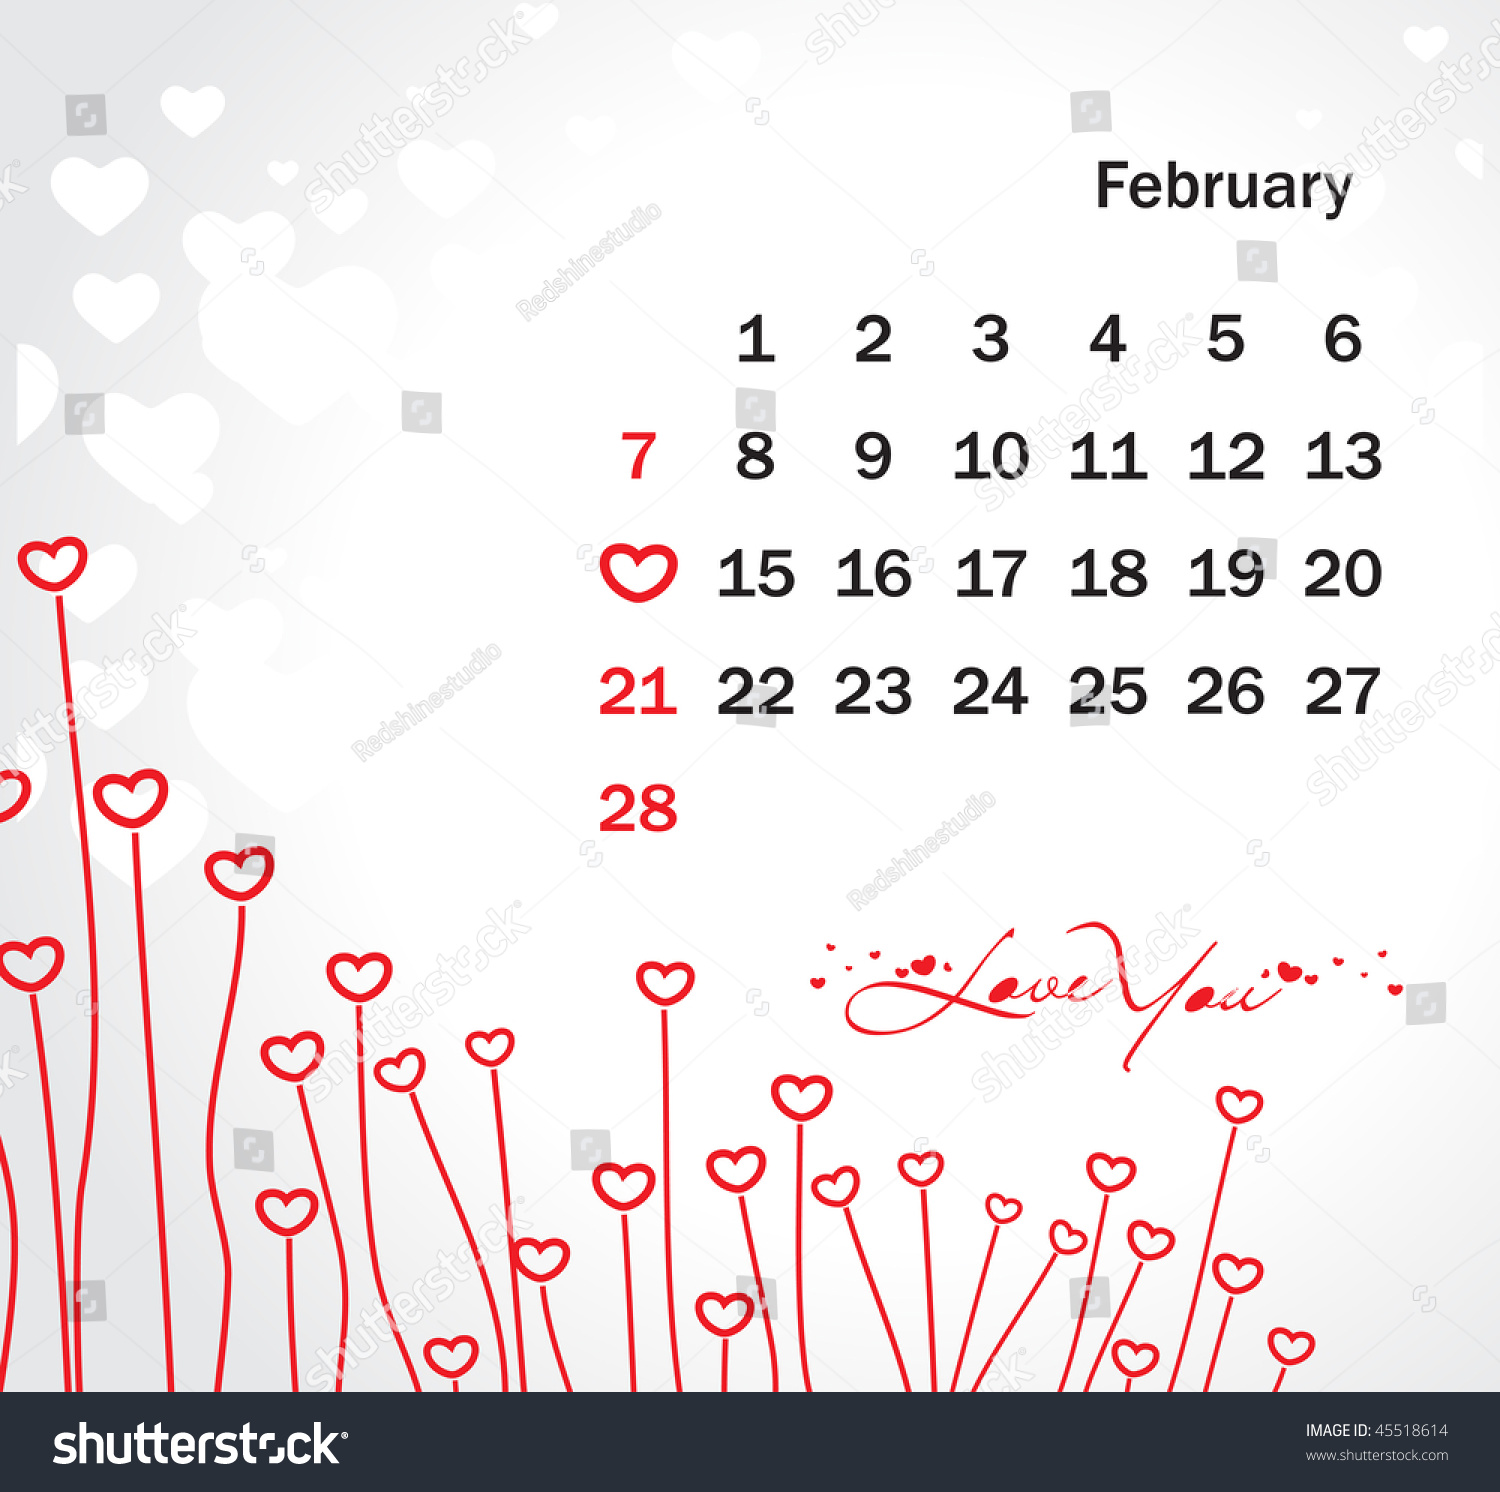 February Calendar Illustration : Abstract valentine s day card with february calendar